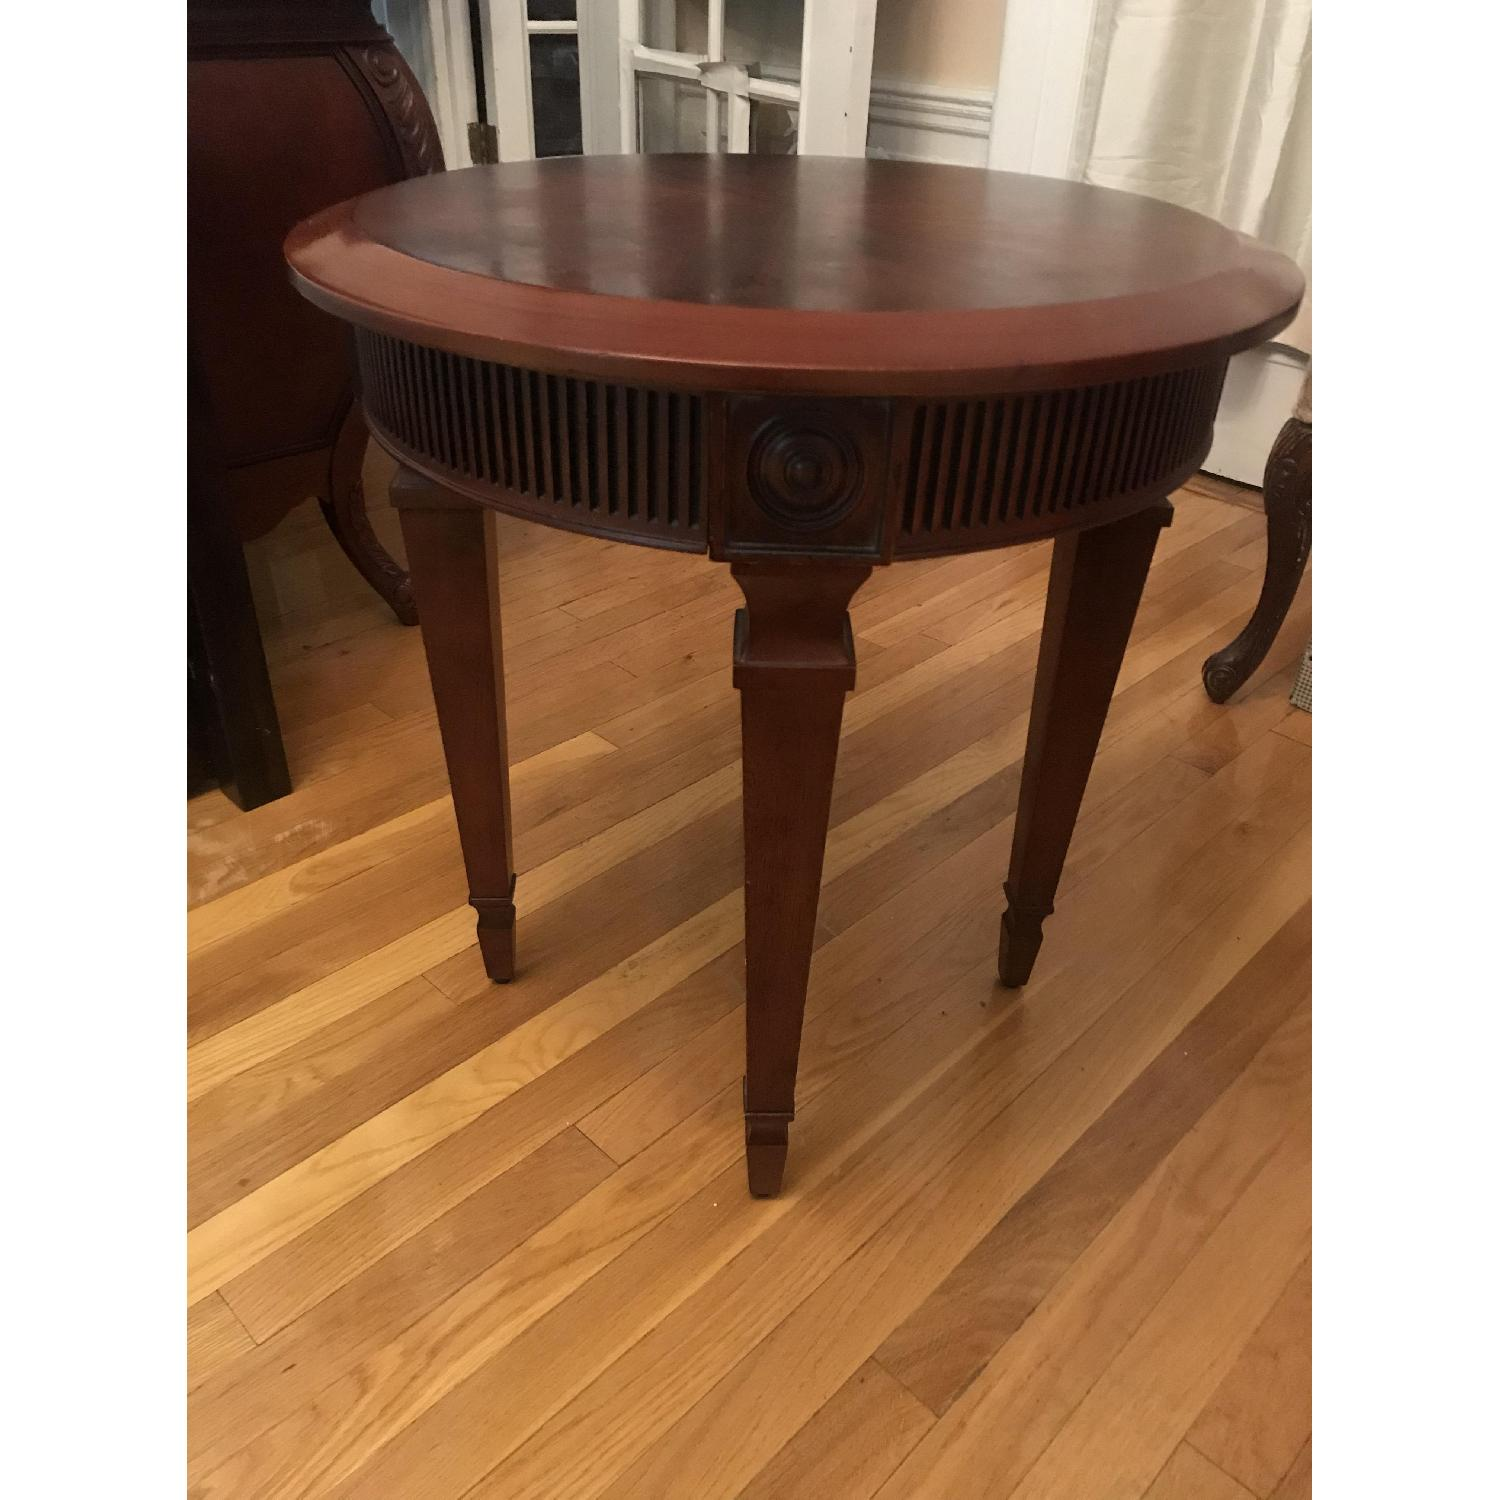 Bombay Company Antique-Style Side Tables - image-11